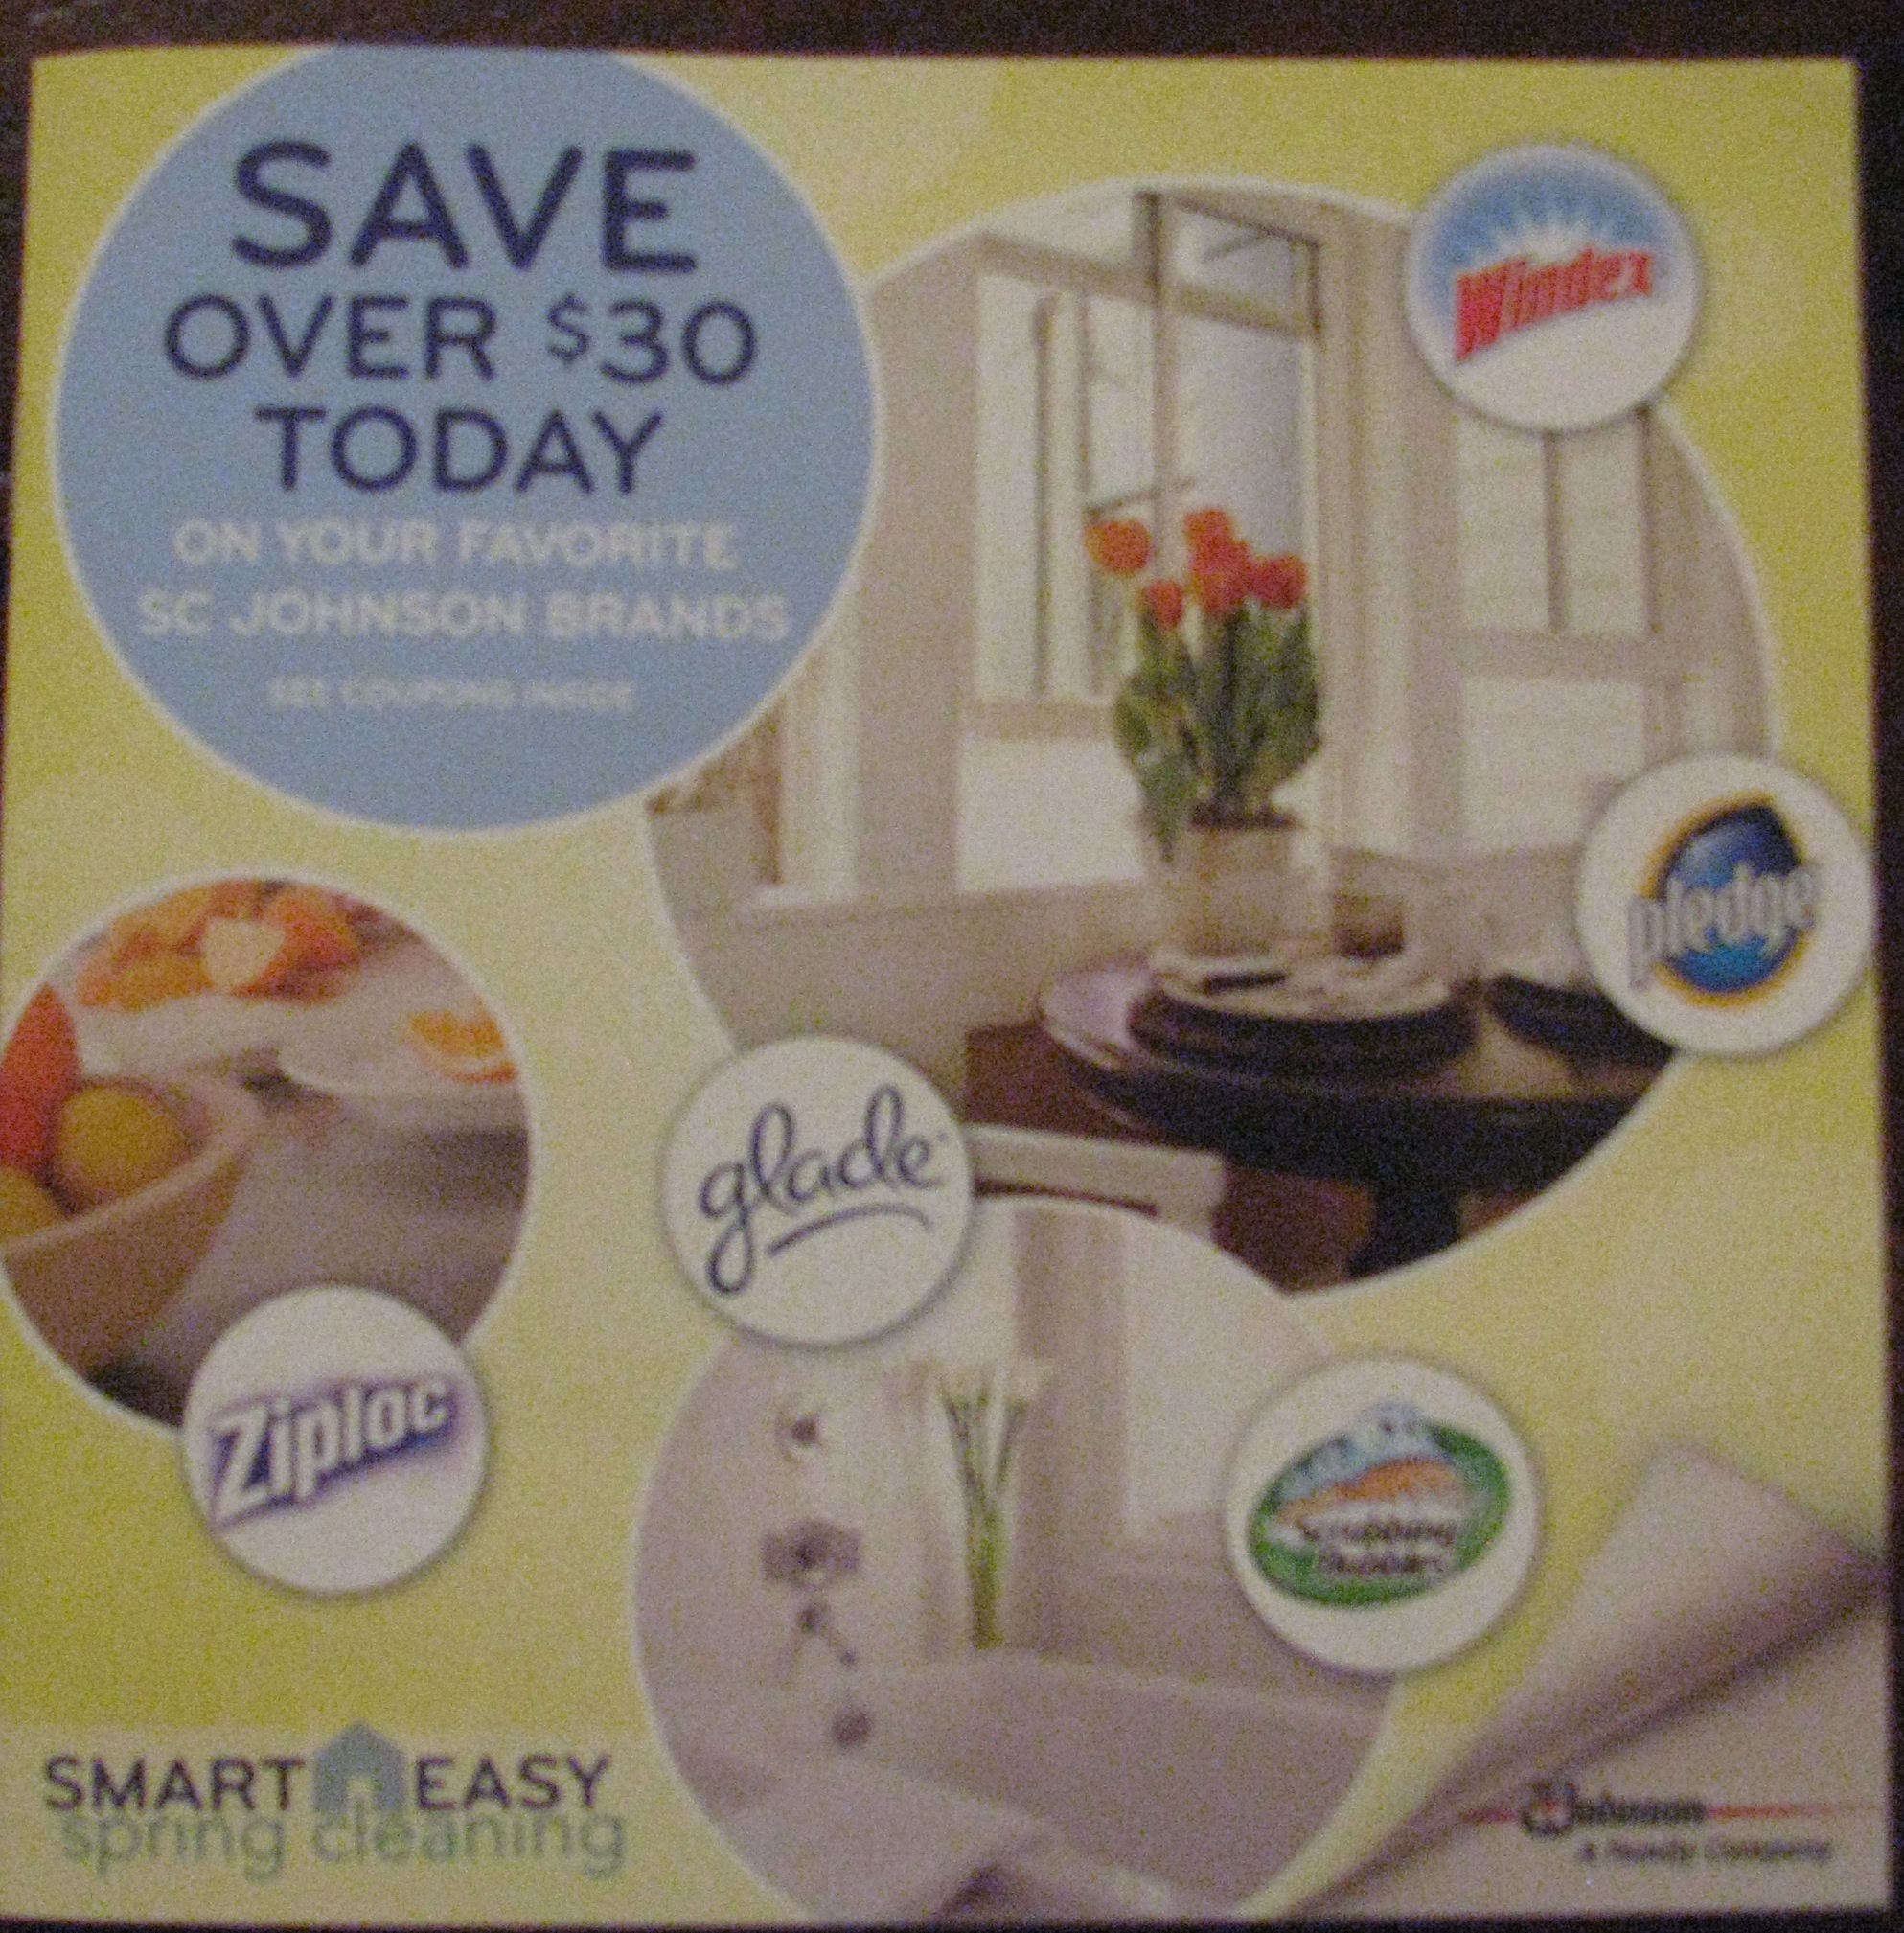 New SC Johnson Coupon Book | Living Rich With Coupons®Living Rich